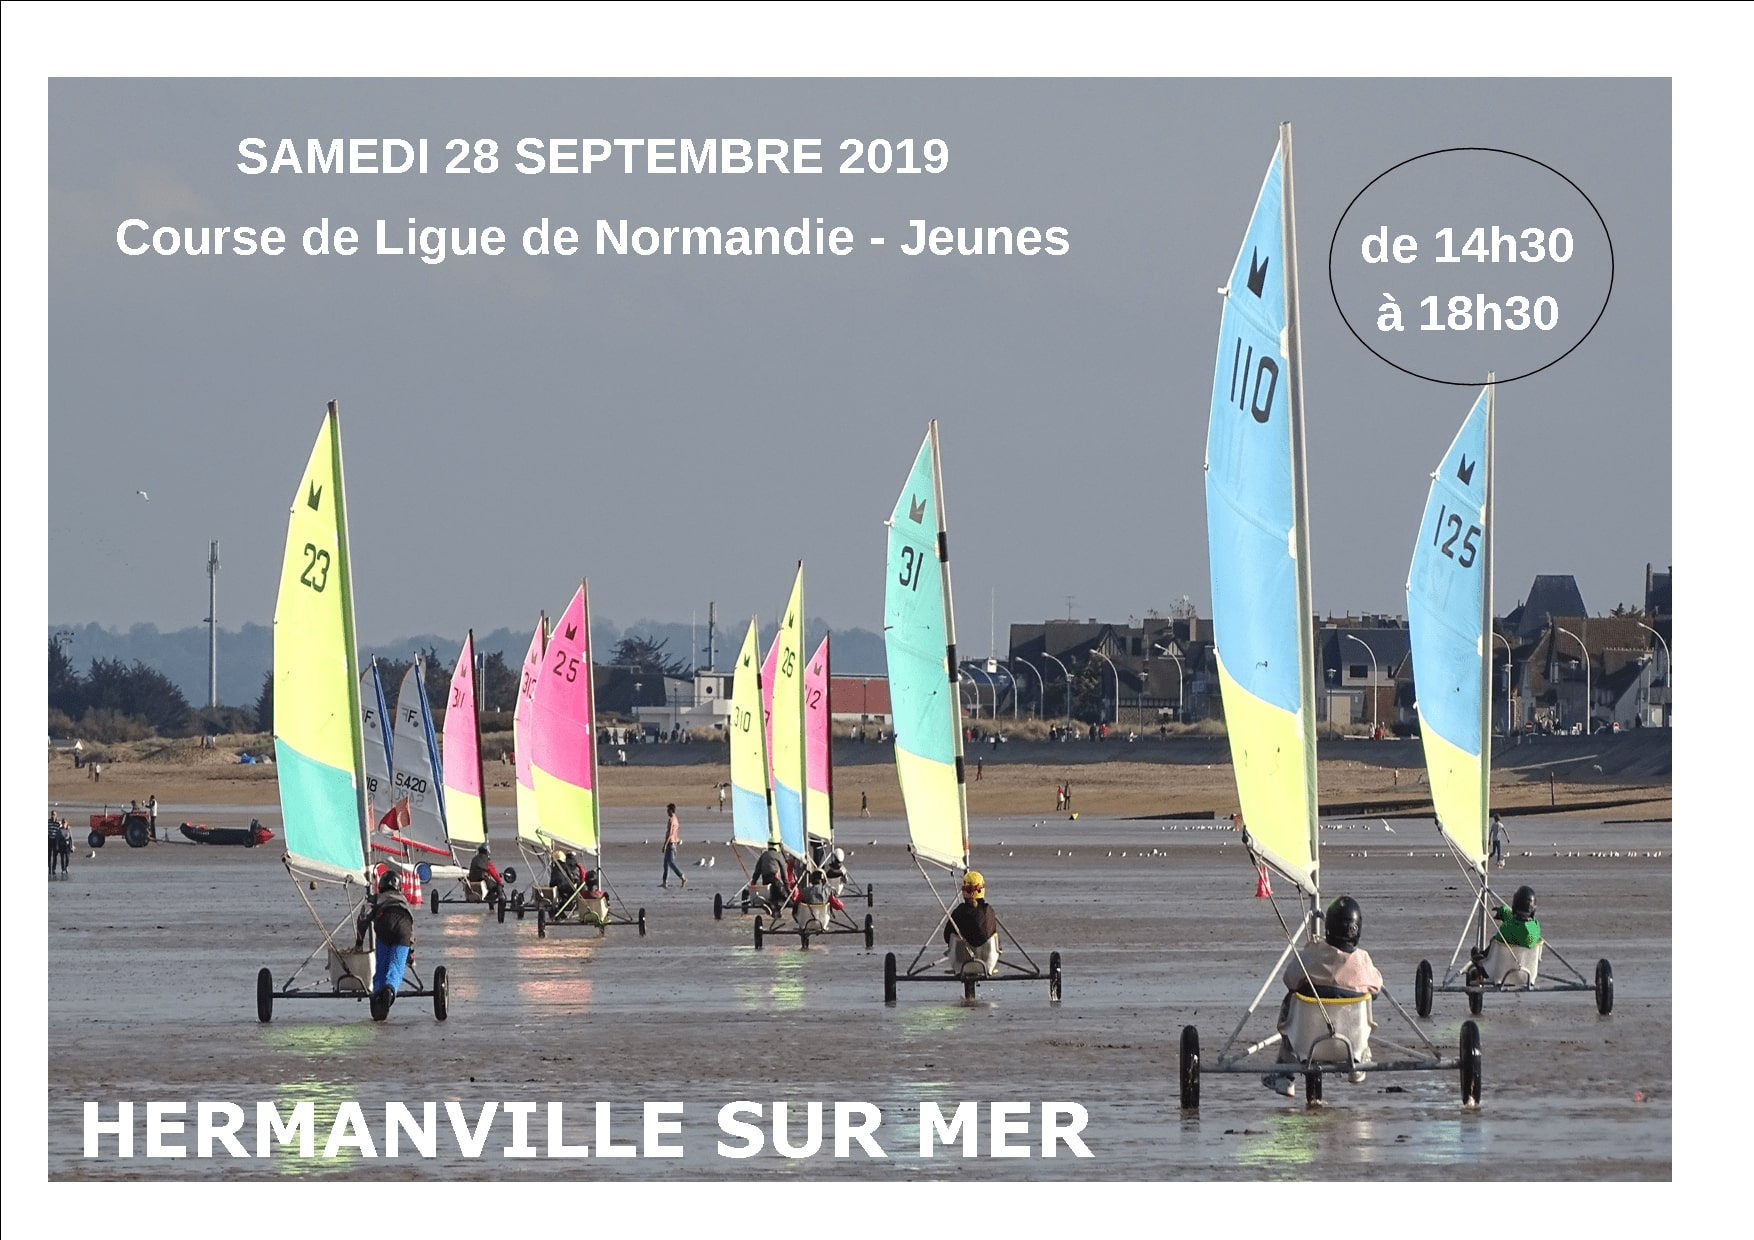 COURSE DE LIGUE 28 septembre 2019